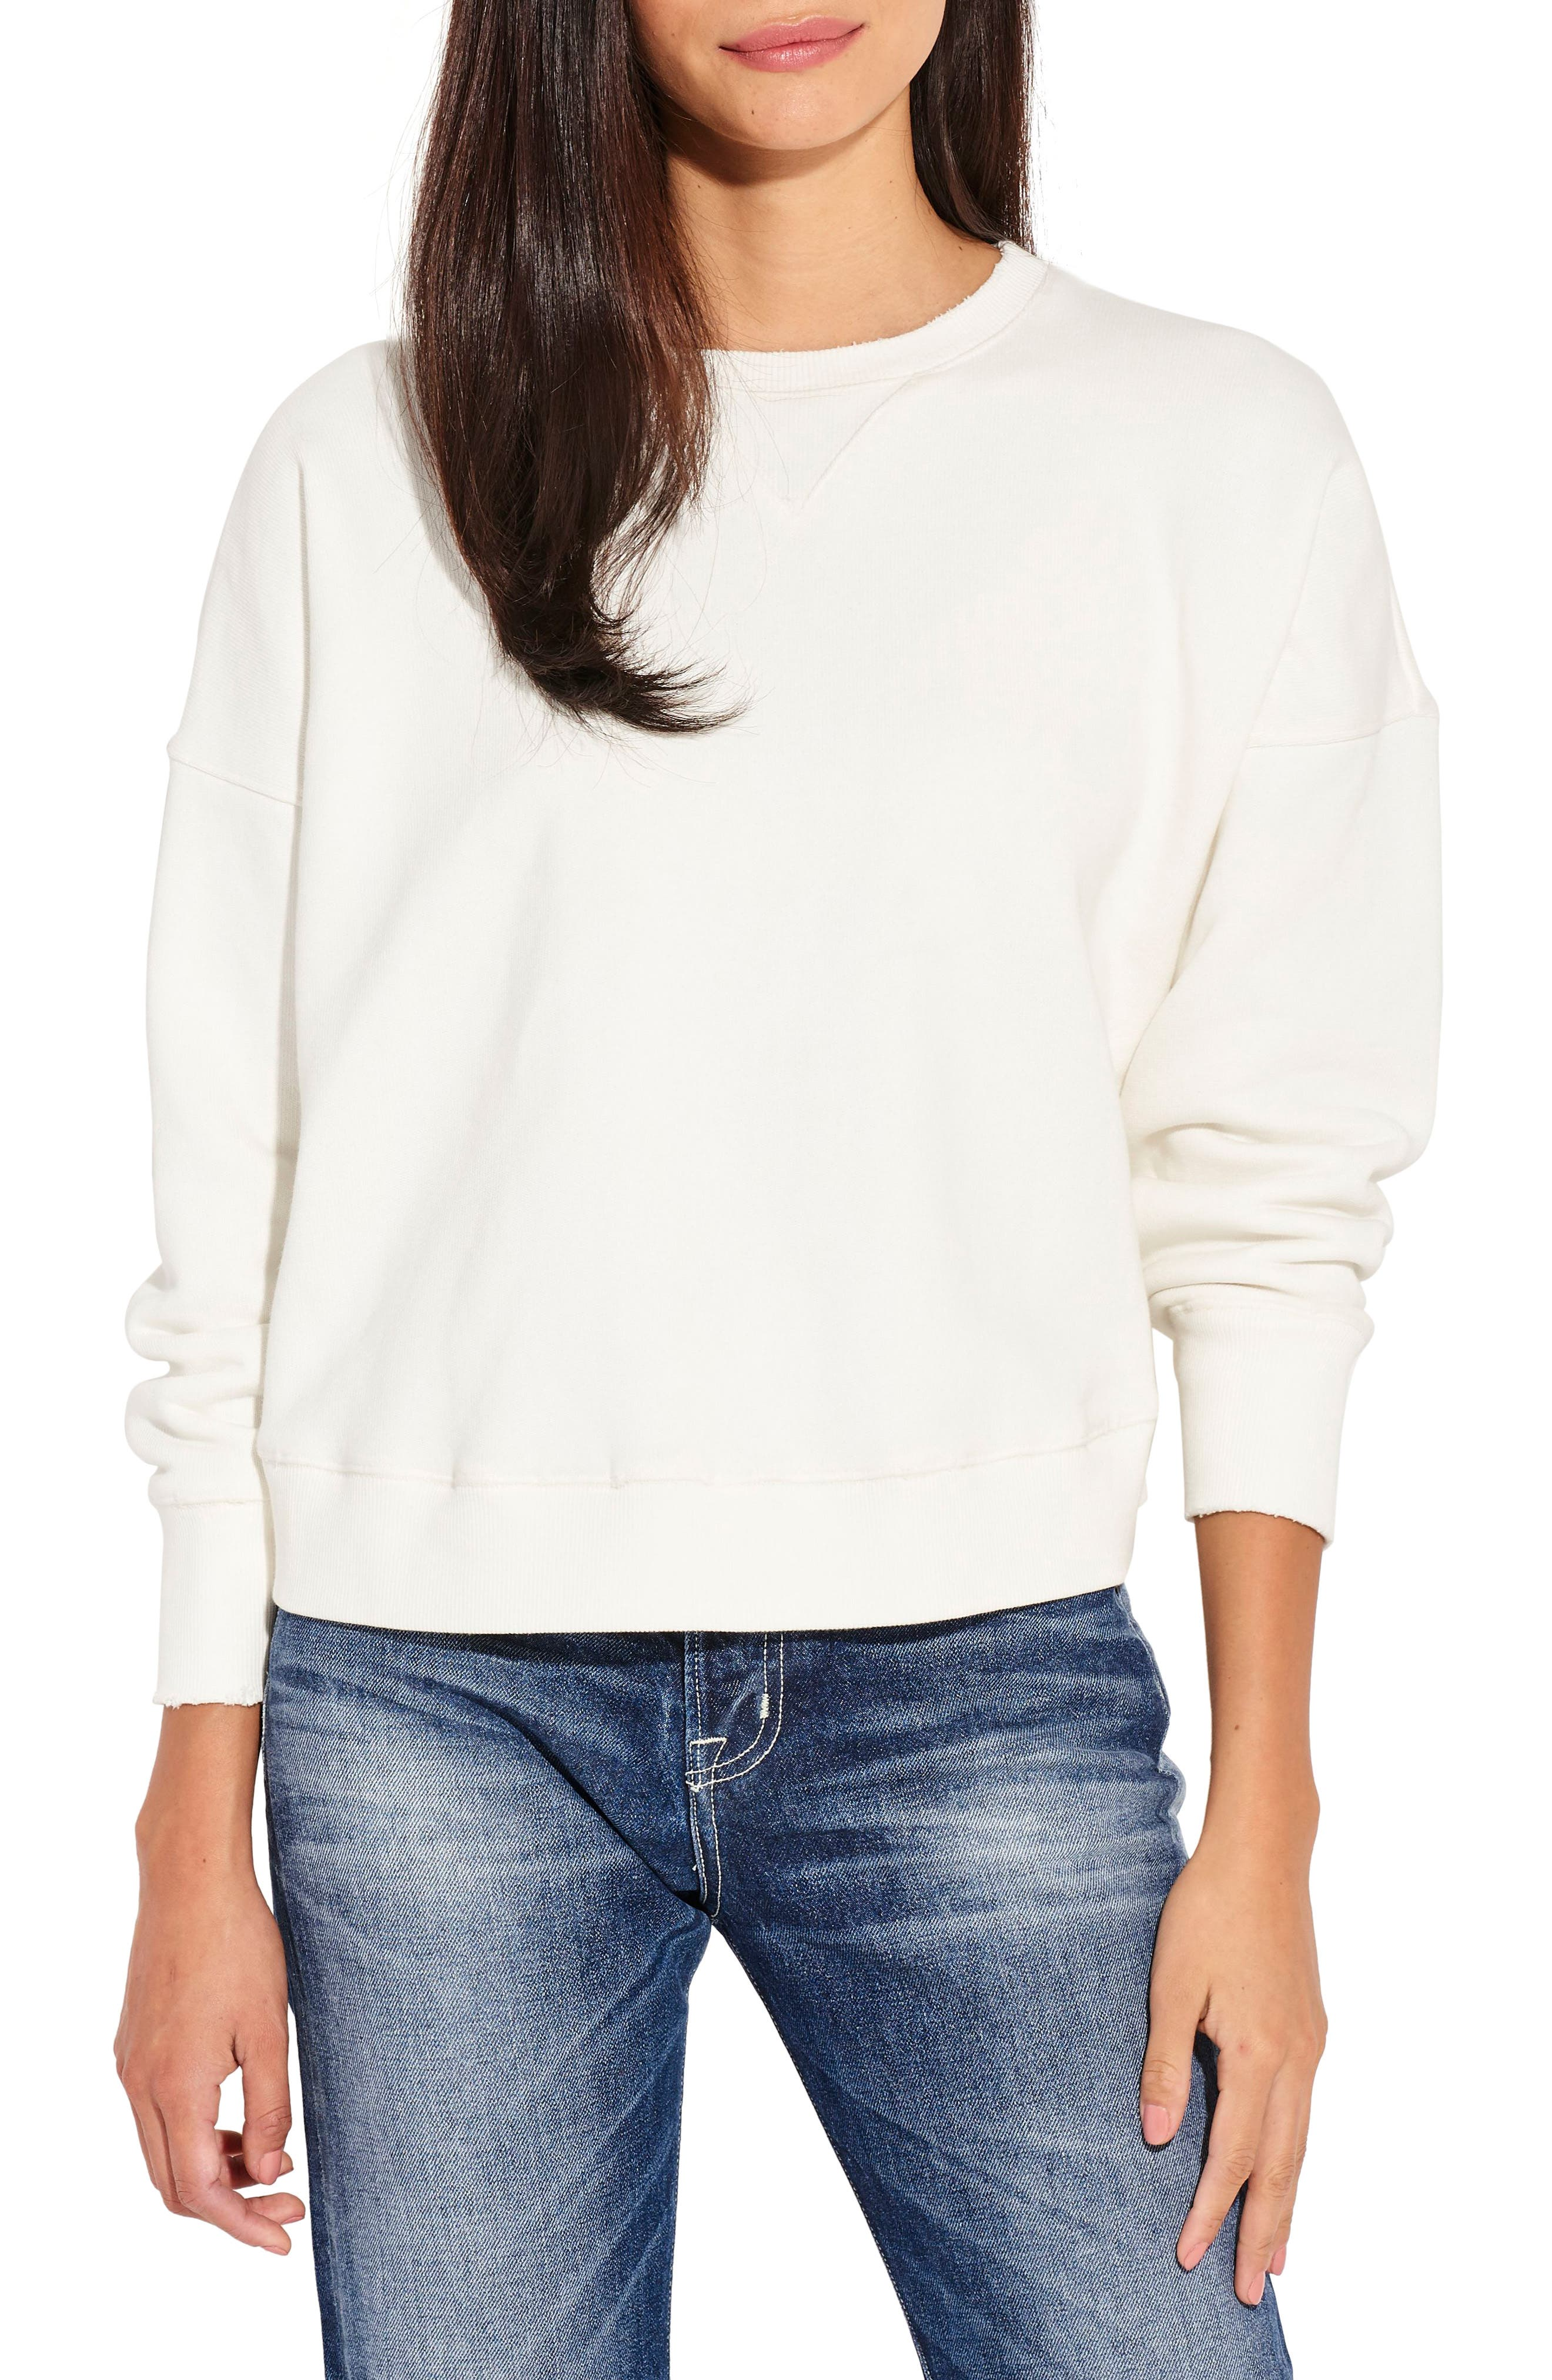 The Big Guy Sweatshirt,                         Main,                         color,